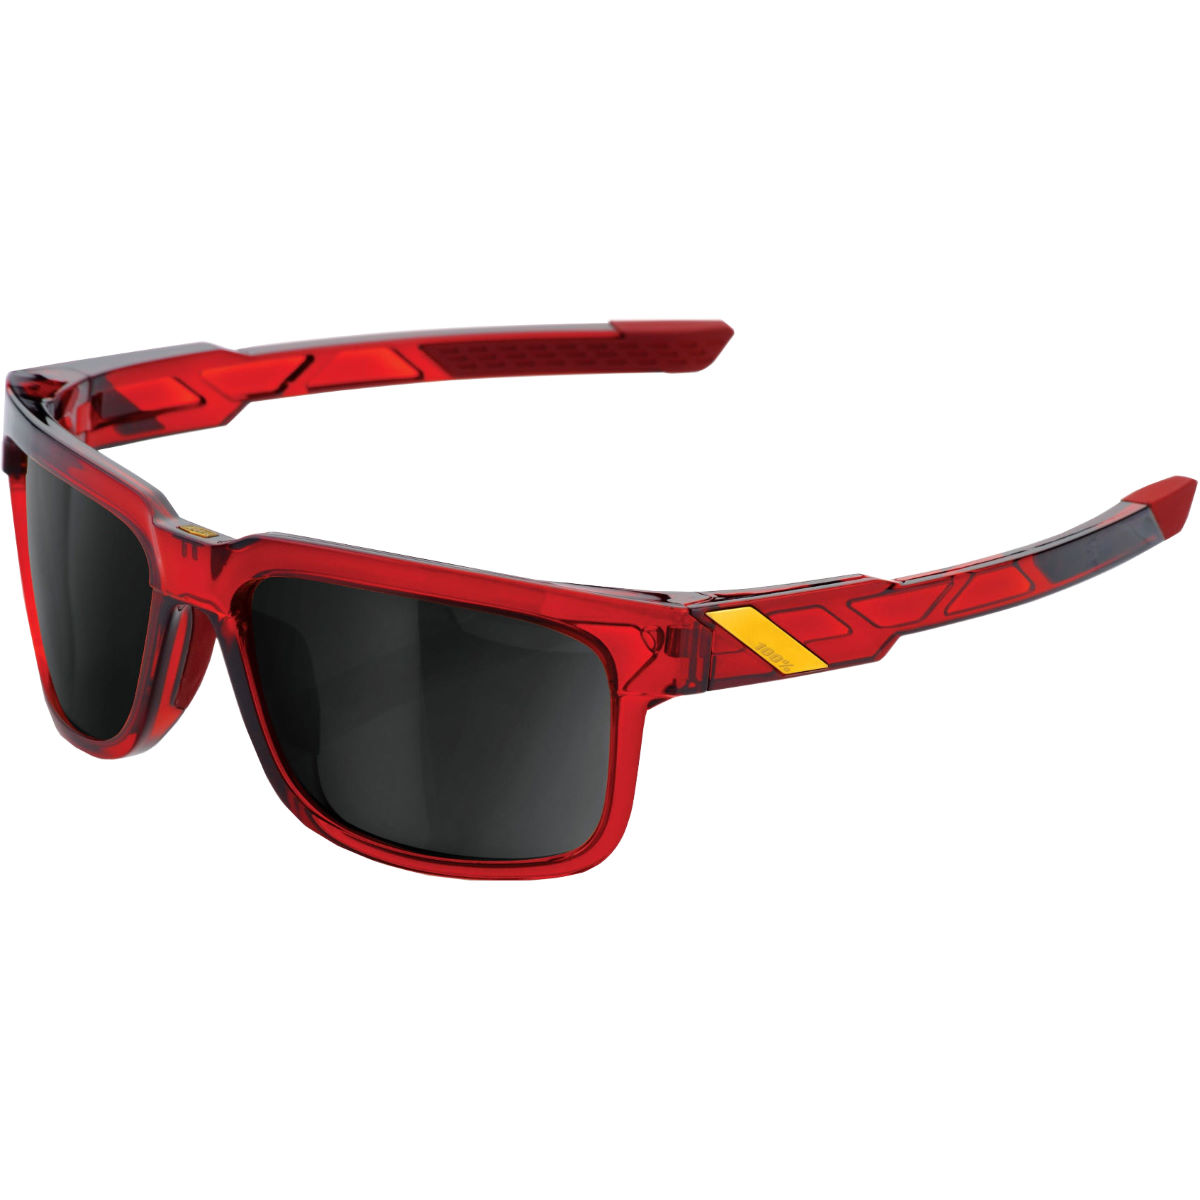 100% Type-s - Black Mirror Lens - One Size Cherry Palace  Sunglasses